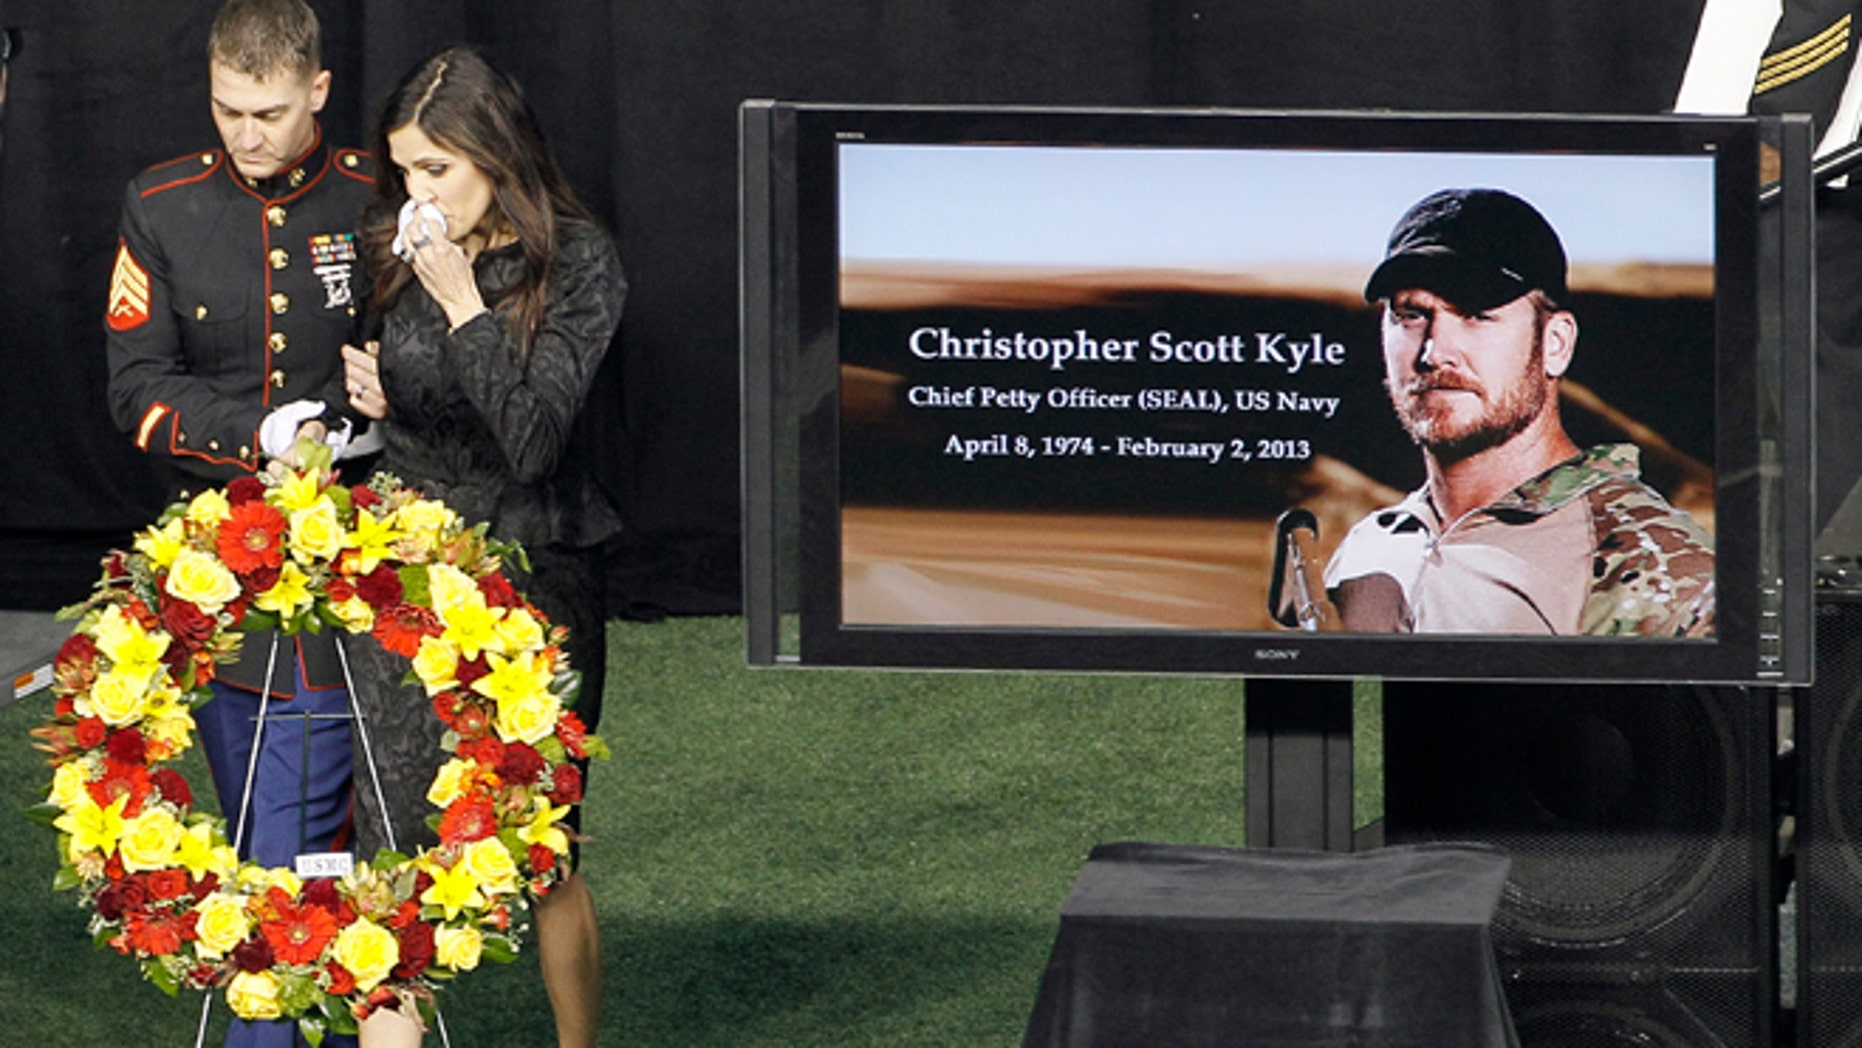 Feb. 11, 2013: In this file photo, Christopher Kyle's wife, Taya, is escorted to her seat after memorializing her husband in Arlington, Texas. Former Minnesota Gov. Jesse Ventura sued Chris Kyle, the author of the best-selling book American Sniper, for defamation in 2012 after Kyle claimed in his book that he punched Ventura at a California bar. Ventura says the incident never happened, and hes suing for damages. Kyle, of Texas, was killed last year on a gun range while the lawsuit was pending.